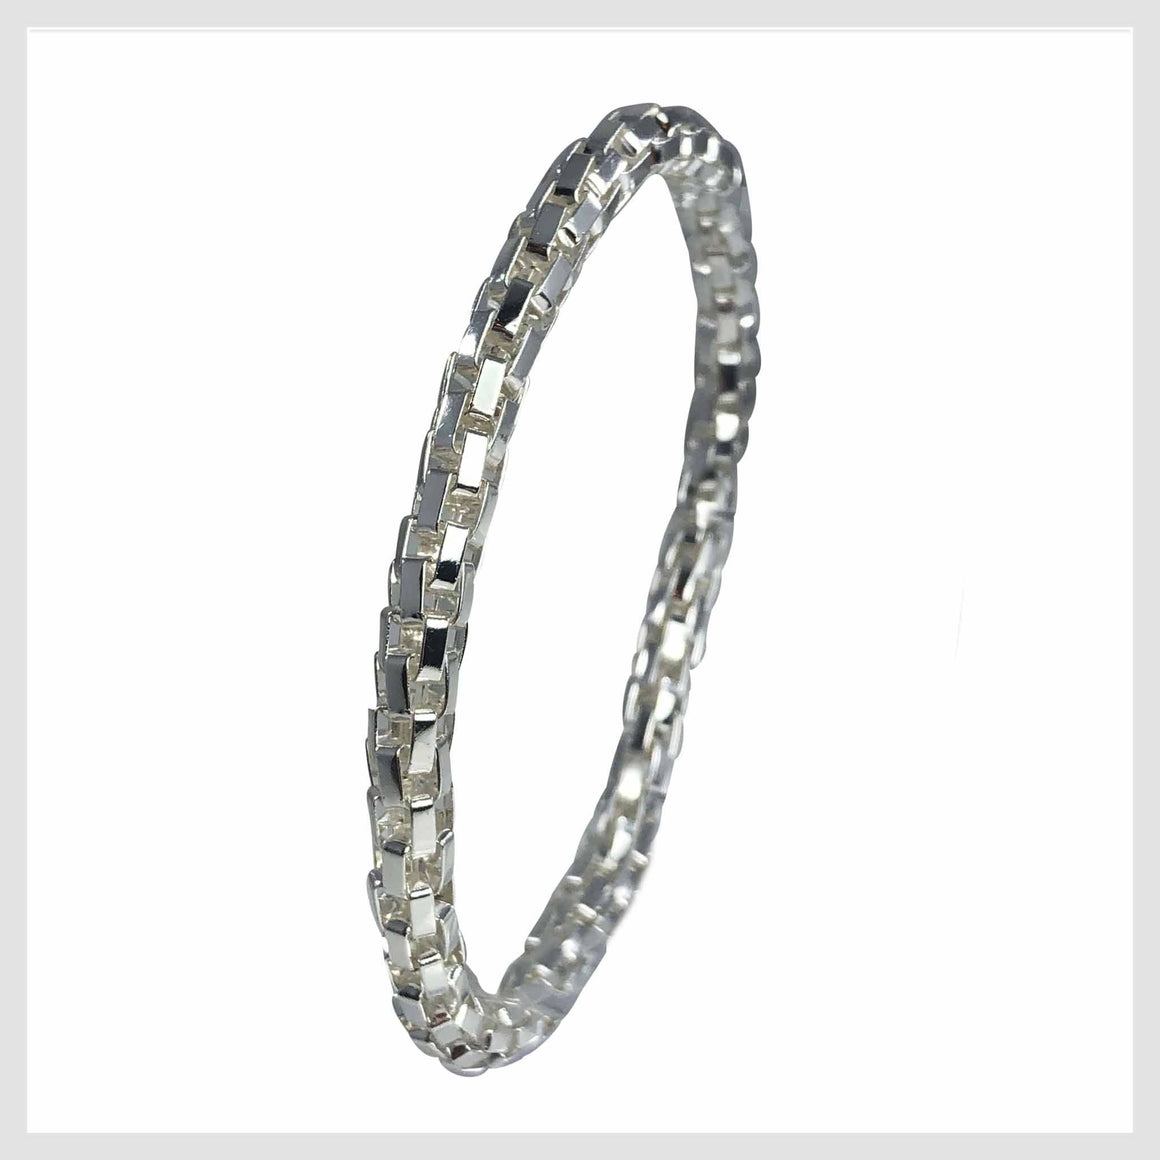 925 Sterling Silver Plated Mesh Chain Stretch Bracelet (Silver 6mm Box Links) - Beads and Dangles